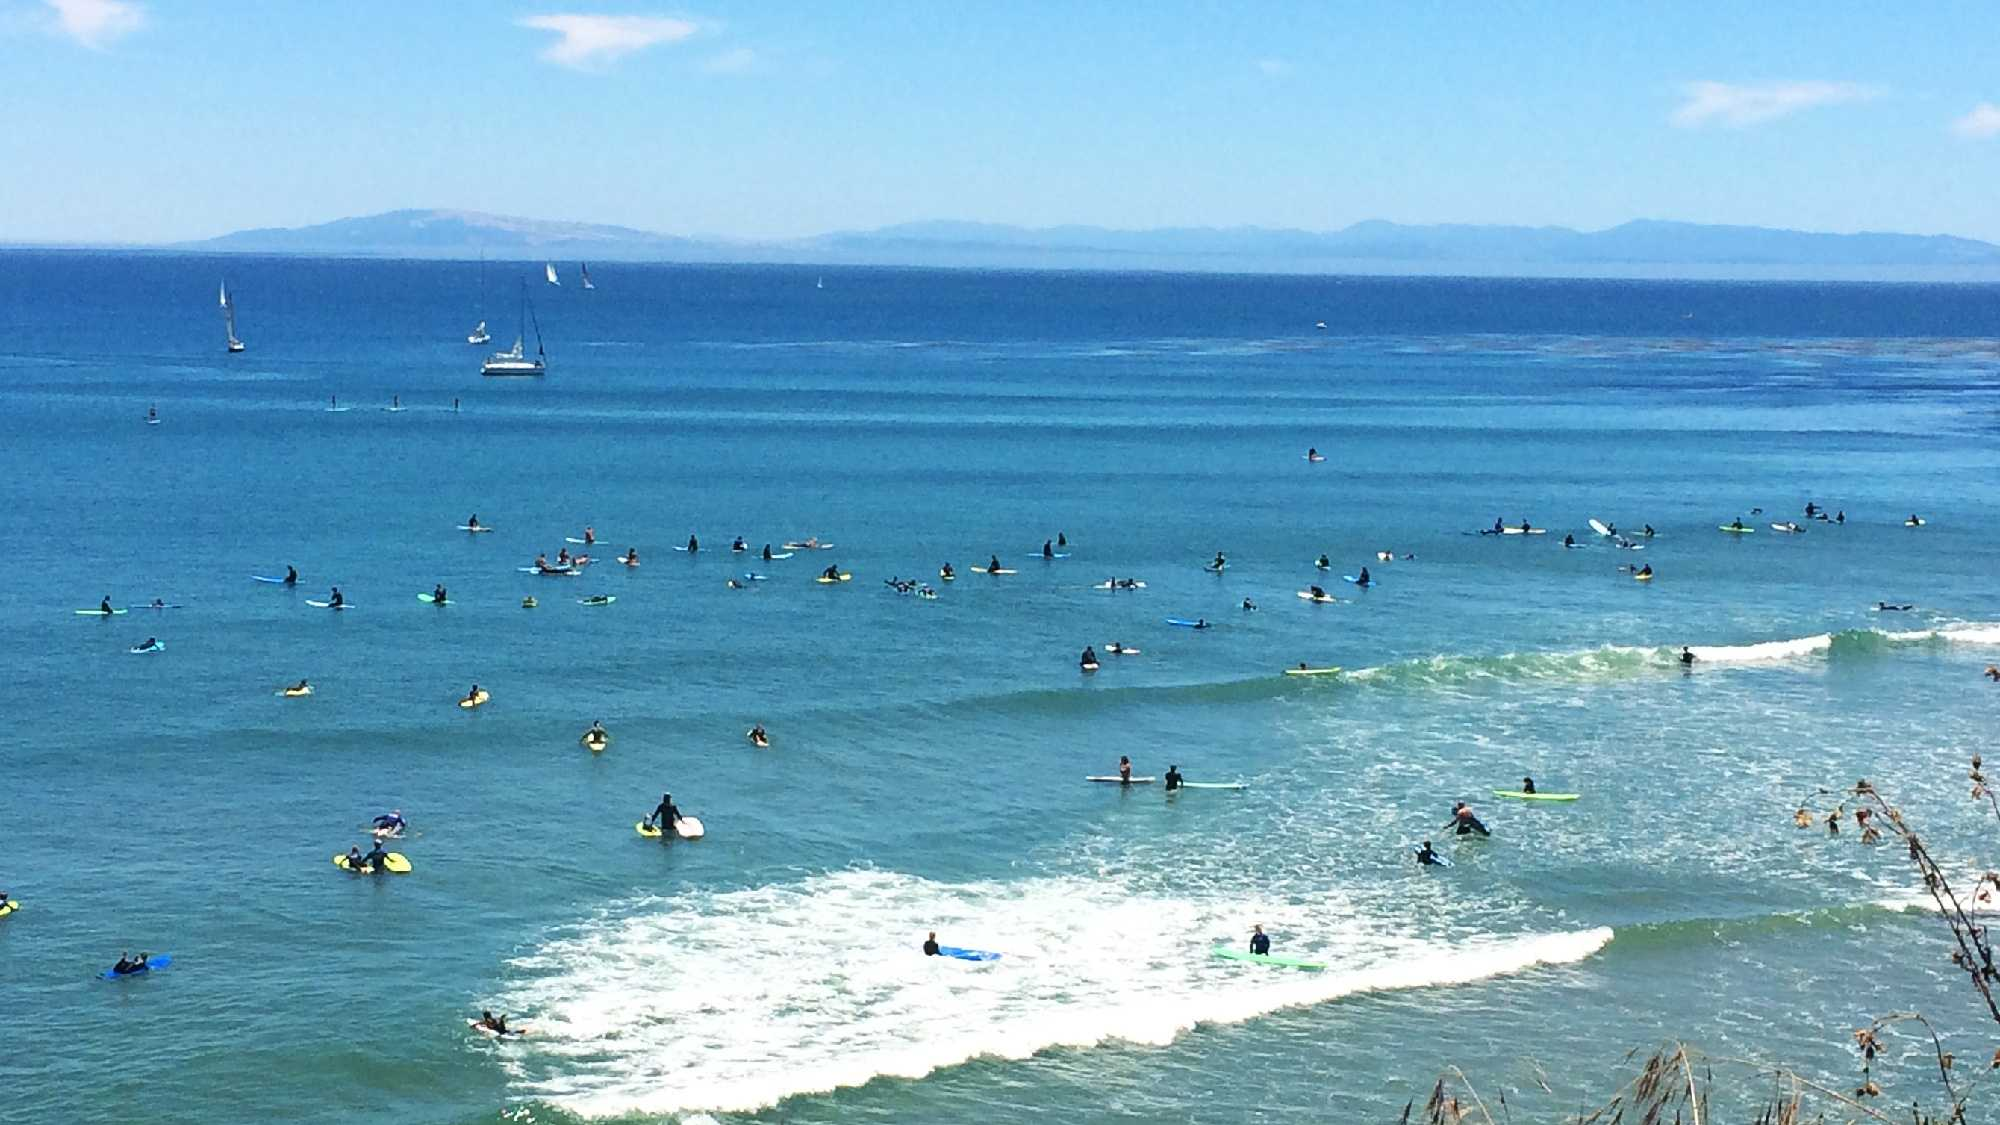 Cowell Beach was packed with surfers on Father's Day.